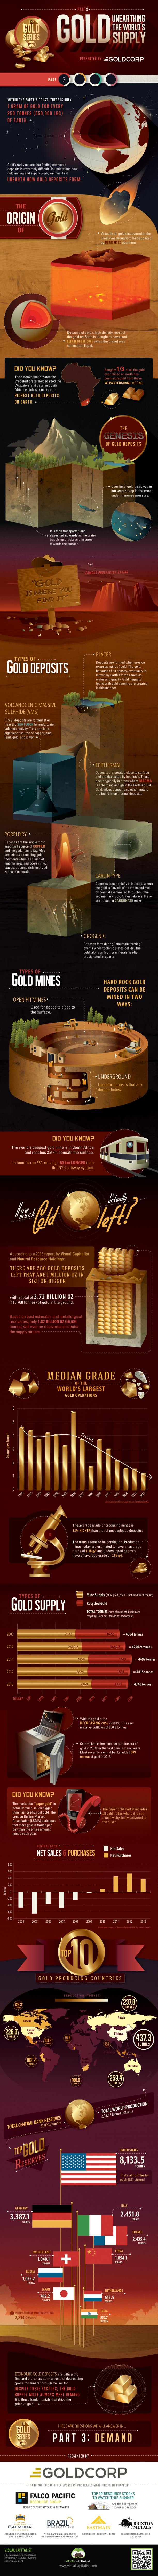 The Gold Series: Unearthing The World's Supply (Part 2)